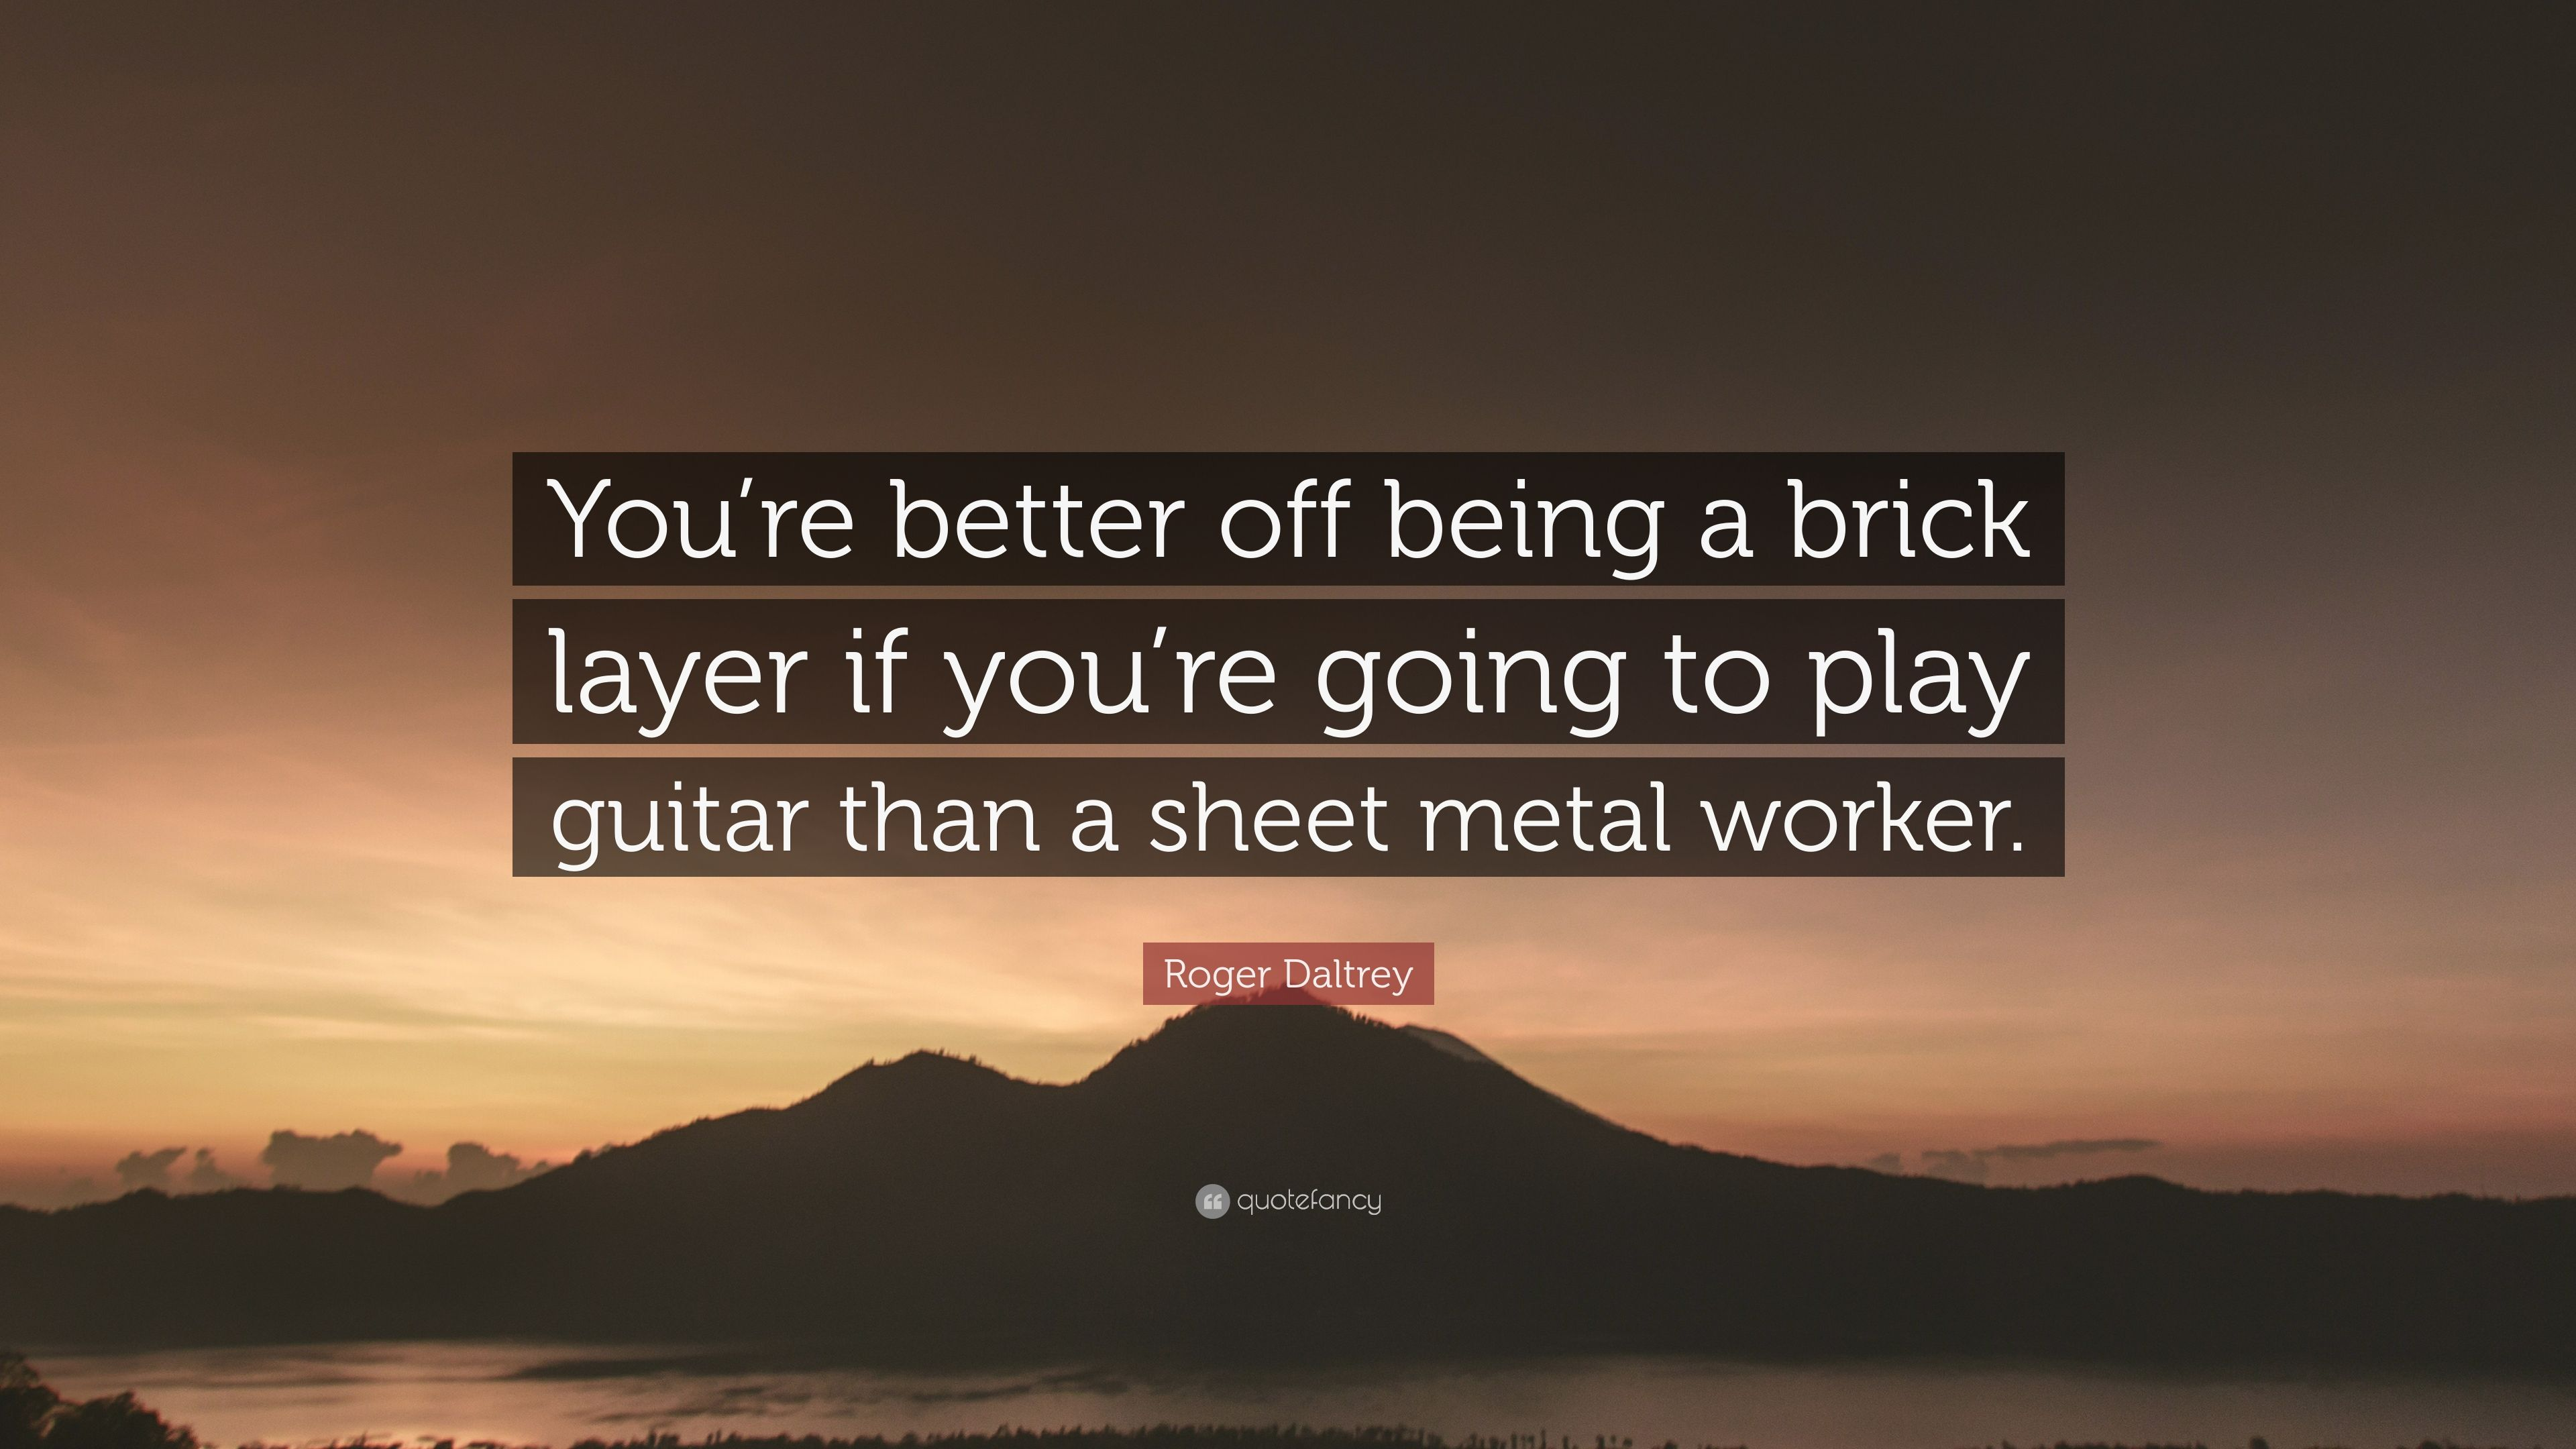 Roger Daltrey Quote Youre Better Off Being A Brick Layer If You